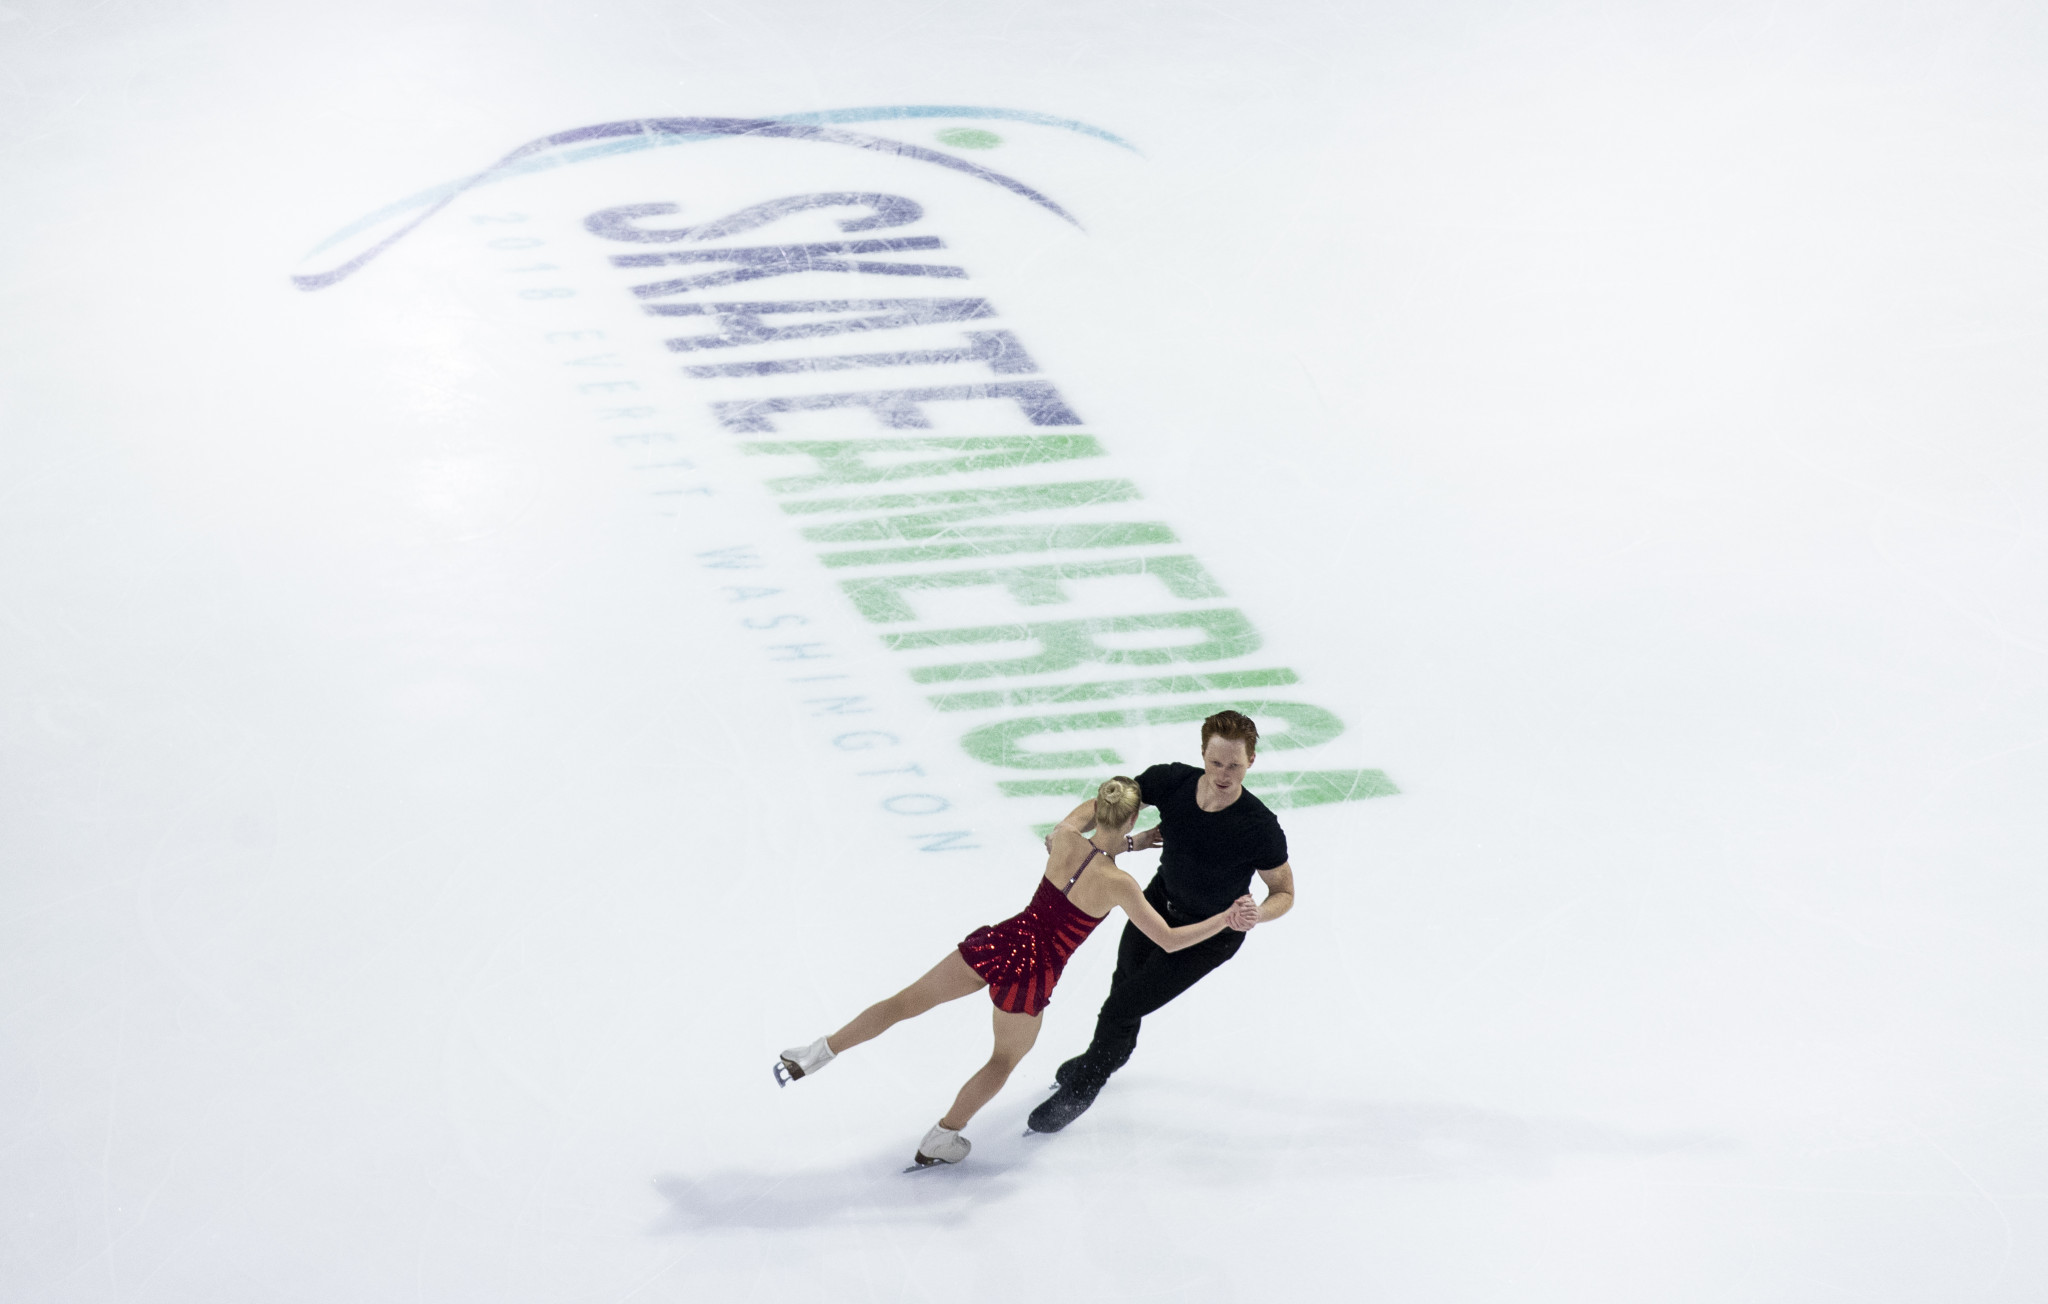 Evgenia Tarasova and Vladimir Morozov lead at the halfway stage of the pairs event ©Getty Images